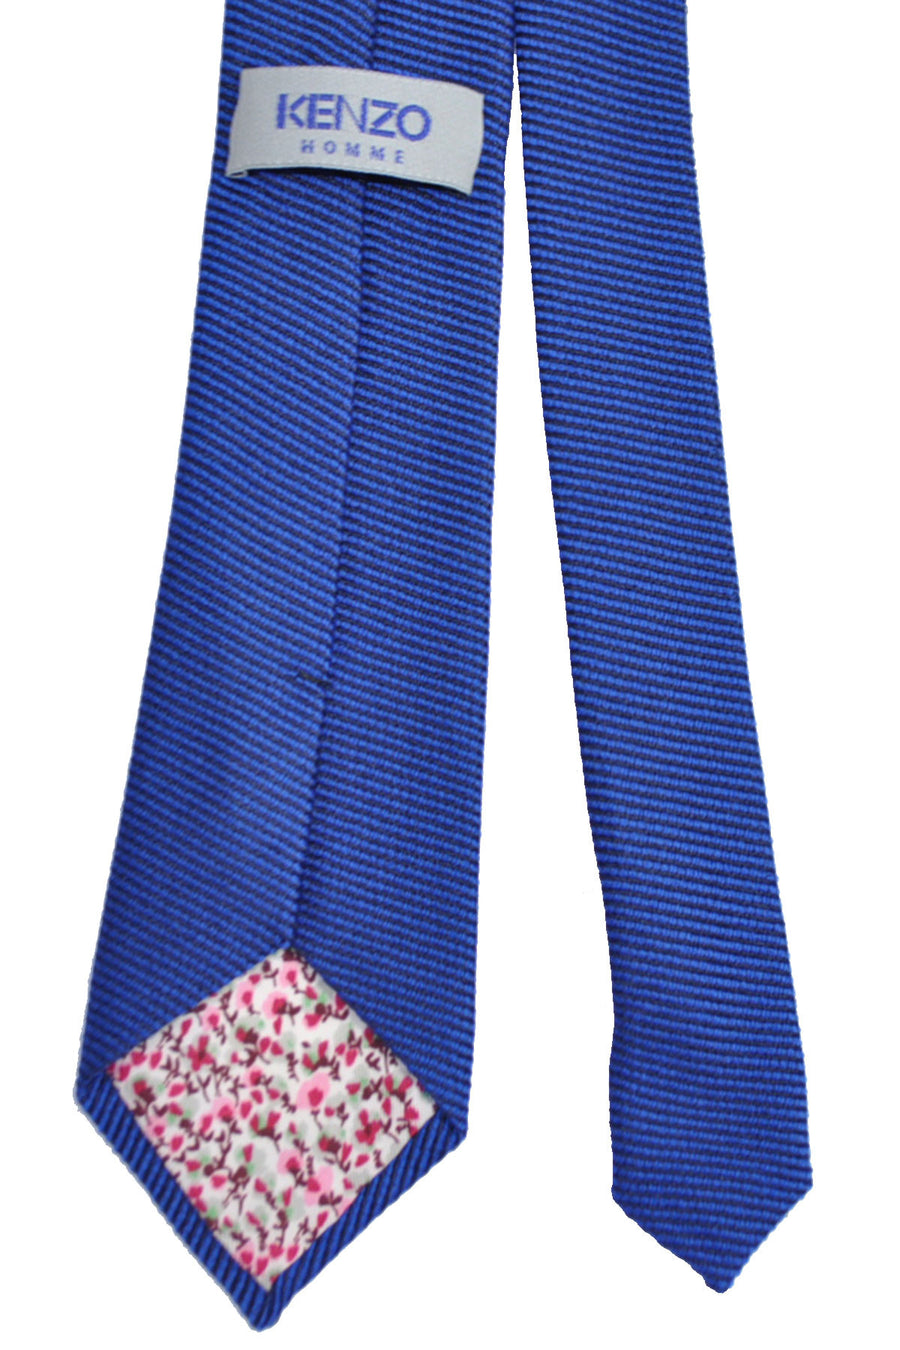 Kenzo Tie Dark Navy Royal Blue Grosgrain - Narrow Necktie